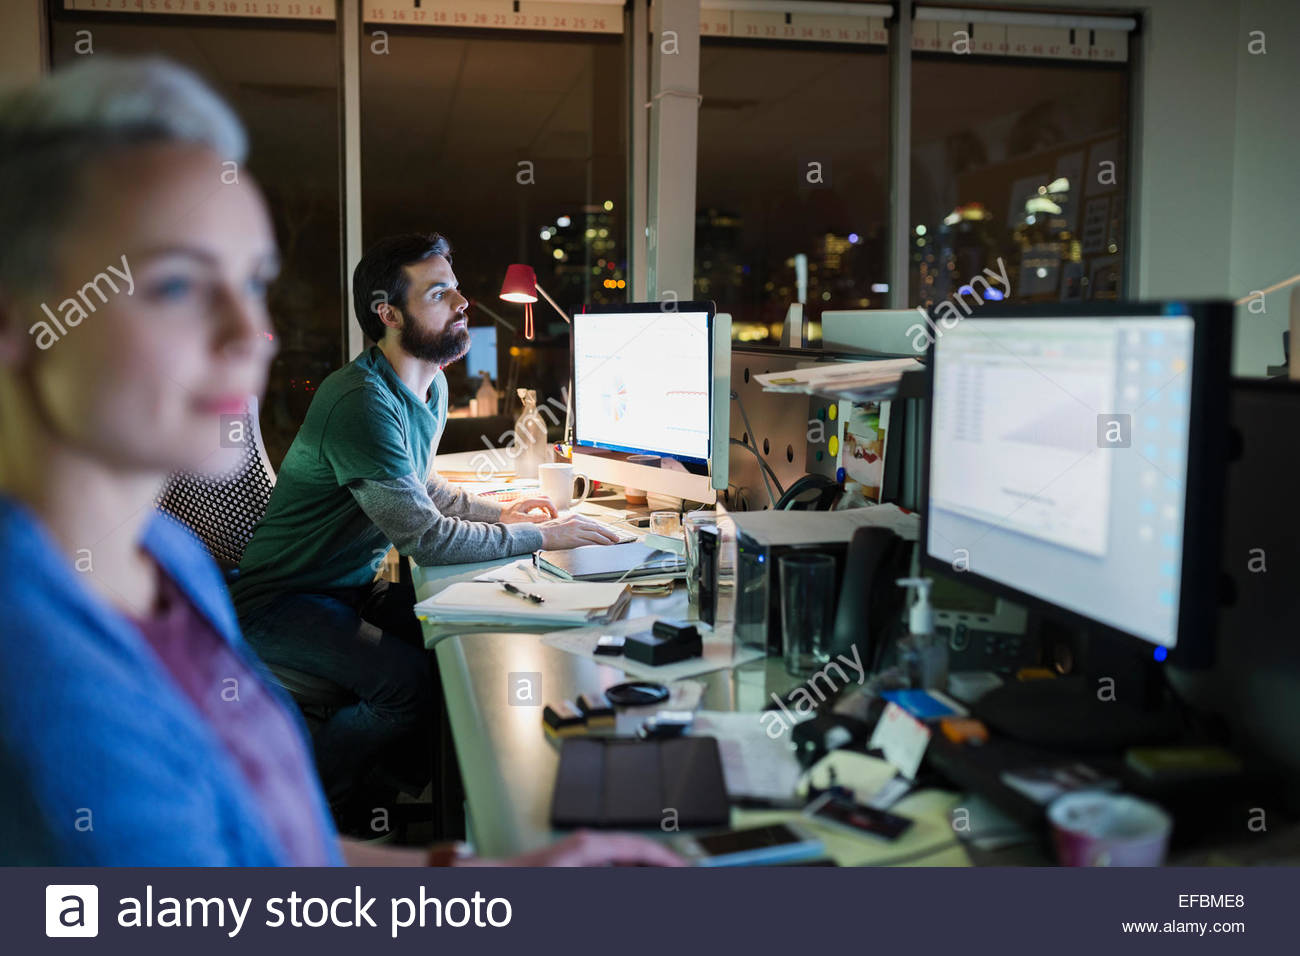 Business people working late at computers in office - Stock Image